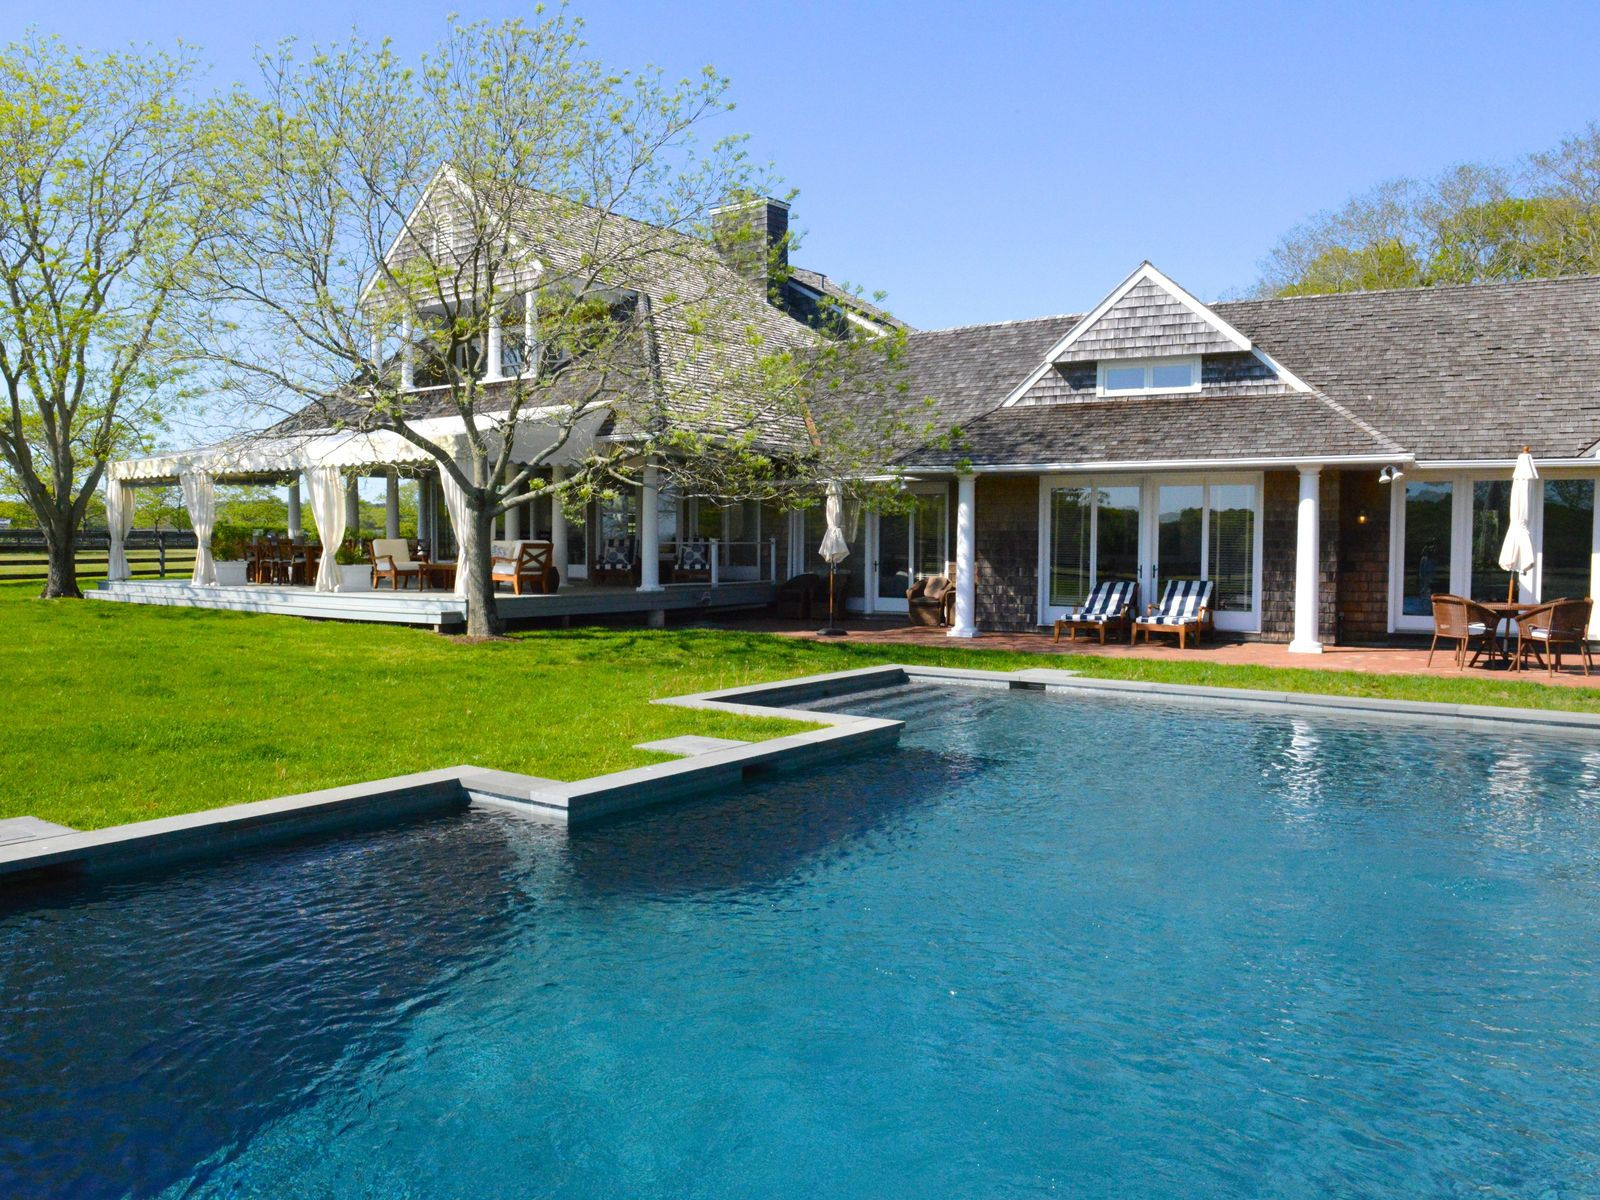 Edge of Wodds Farm - Water Mill, Water Mill NY Single Family Home - Hamptons Real Estate